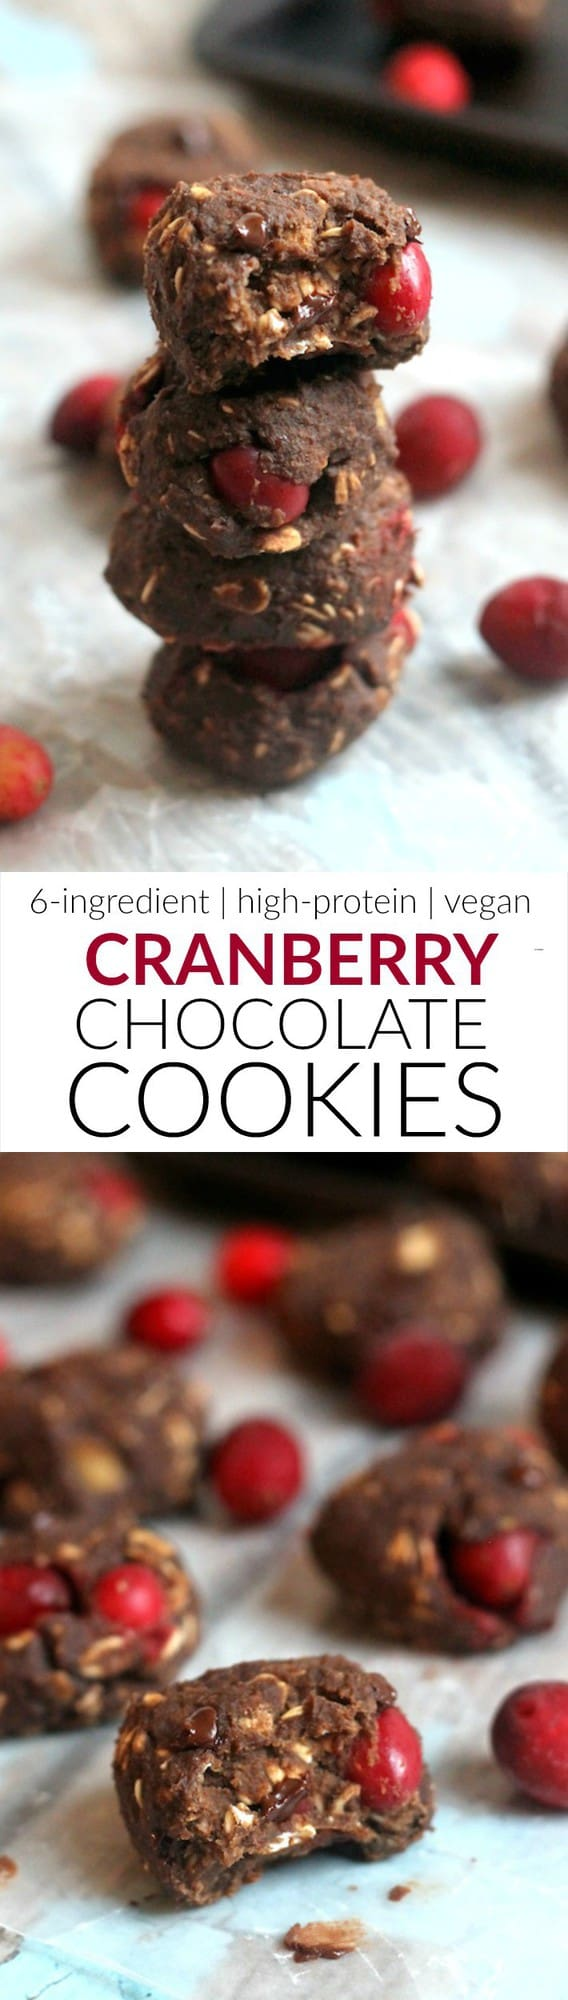 Flourless Cranberry Chocolate Protein Cookies, free of gluten, oil, and refined sugar!